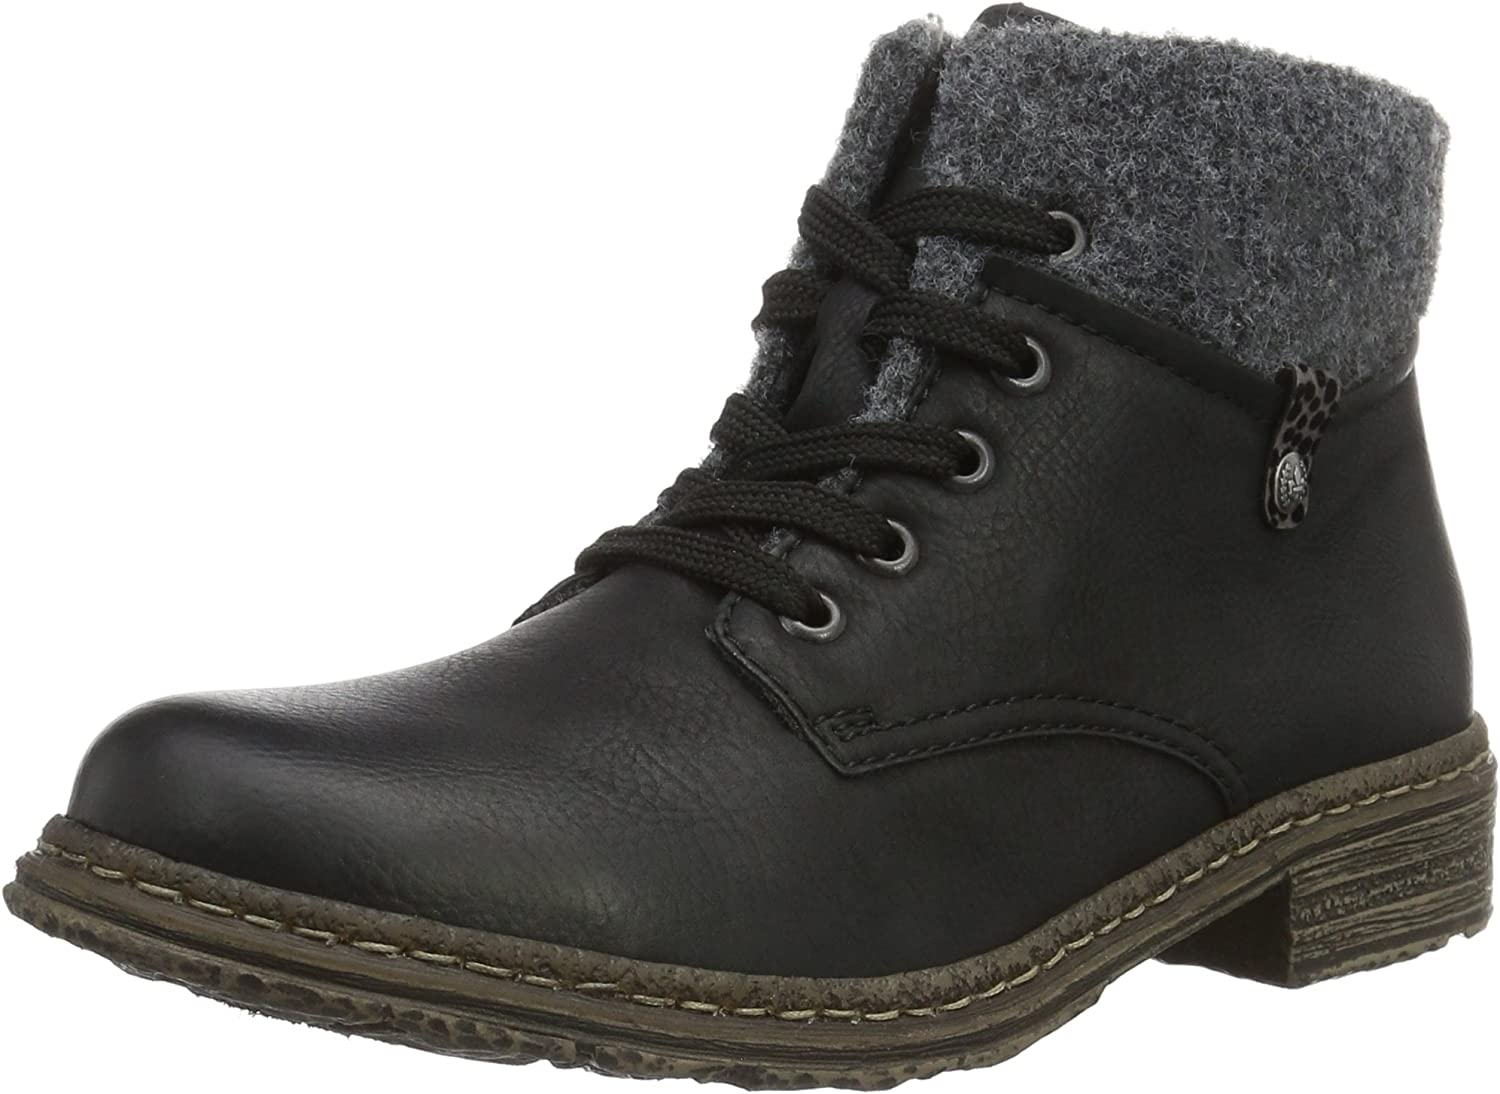 Rieker women lace up boot black 74234 00